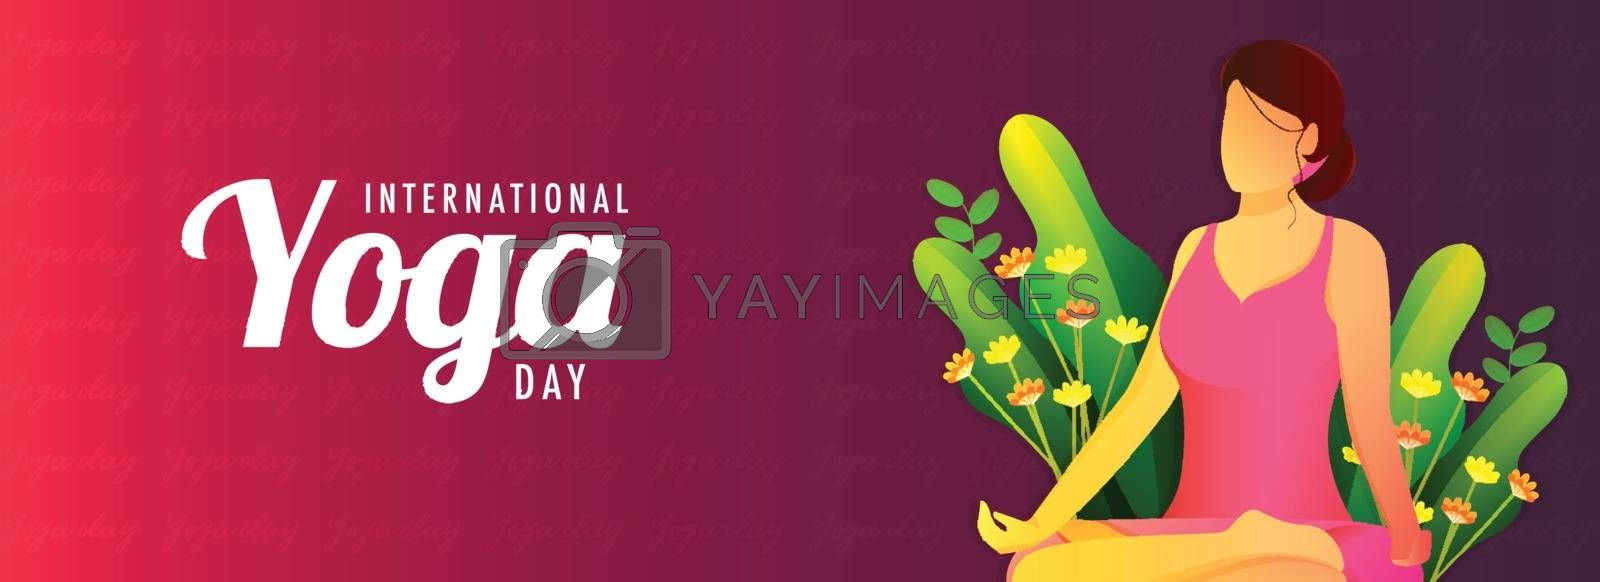 Website header or banner design for International Yoga Day. Cartoon character of a faceless woman doing meditation on red abstract background.